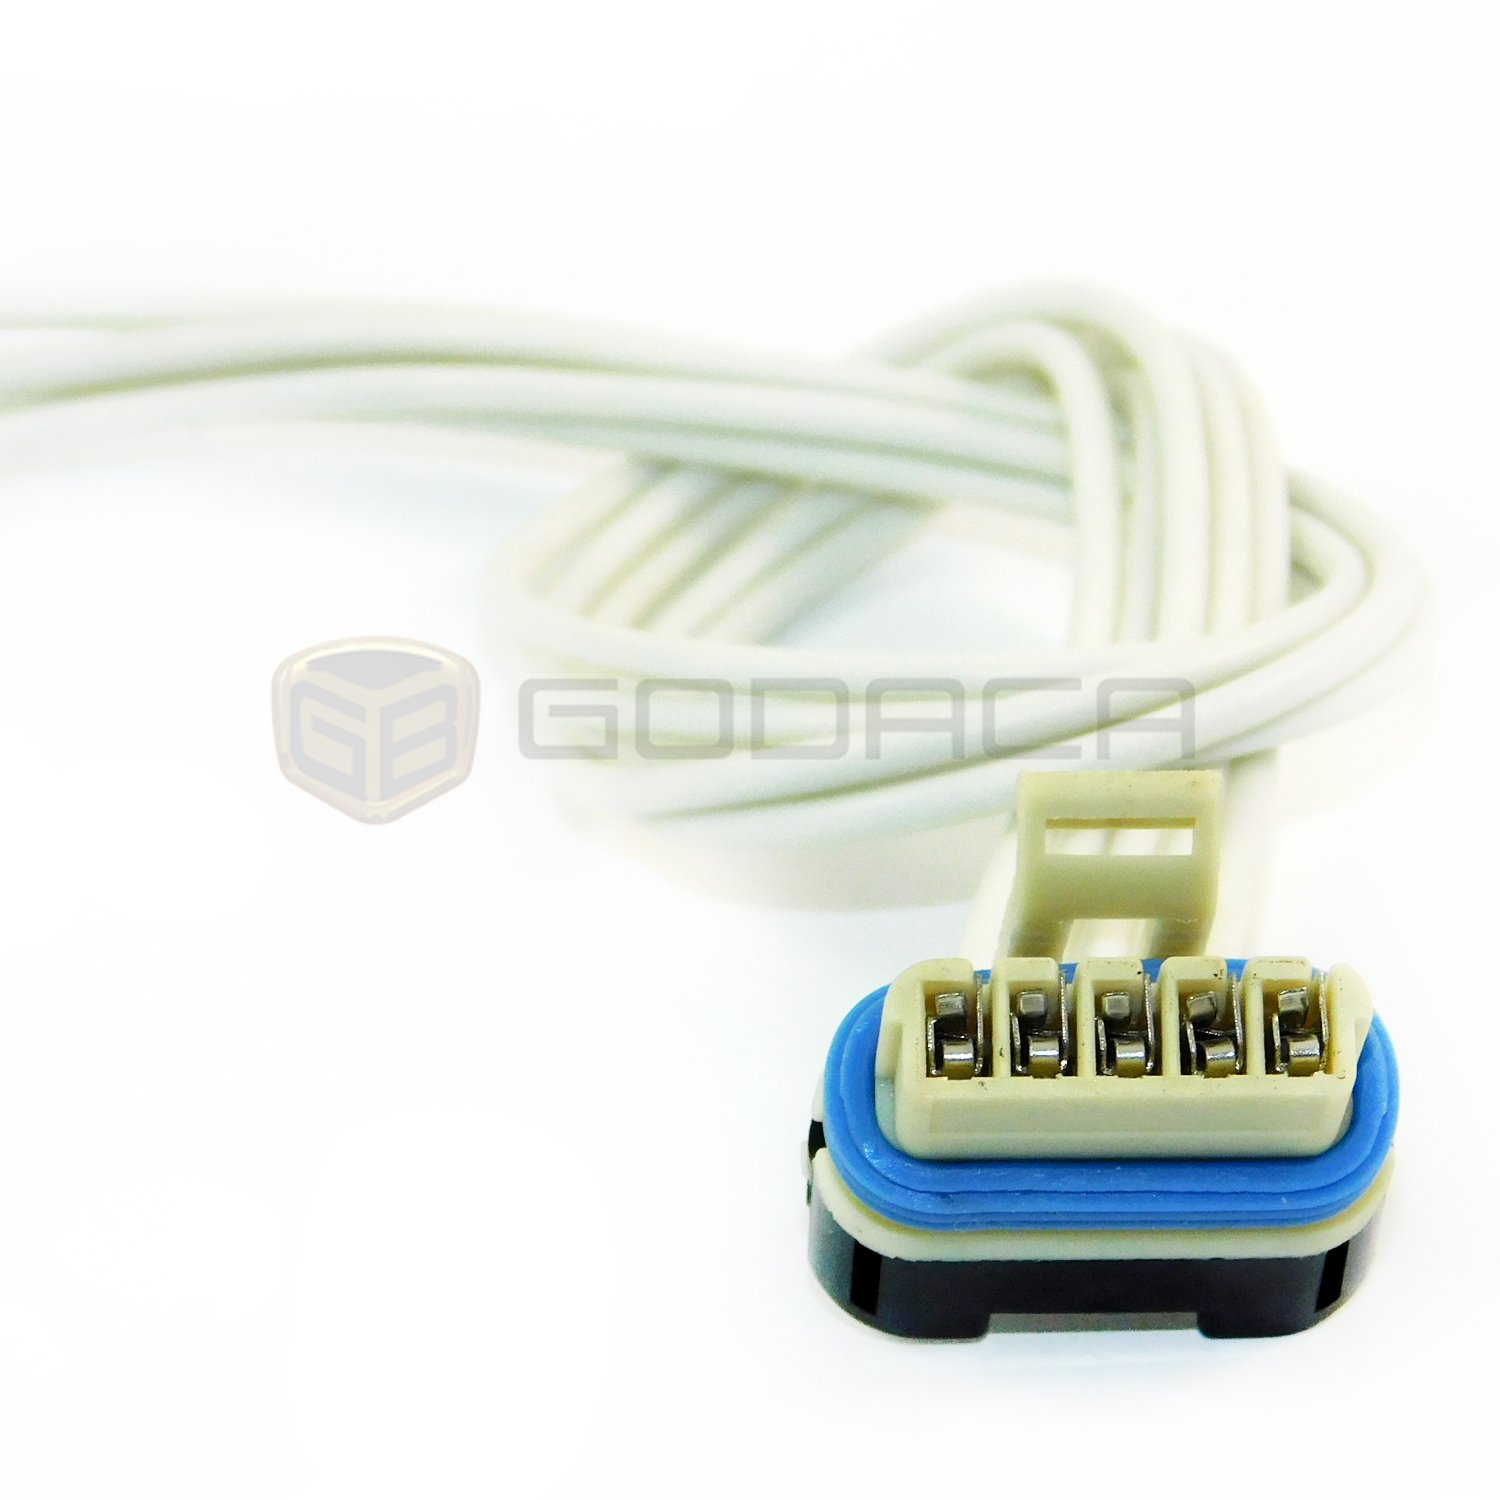 1 X Repair Connector Harness Pigtail 5 Way Egr Valve 60 1974 F250 Wiring Powerstroke Automotive